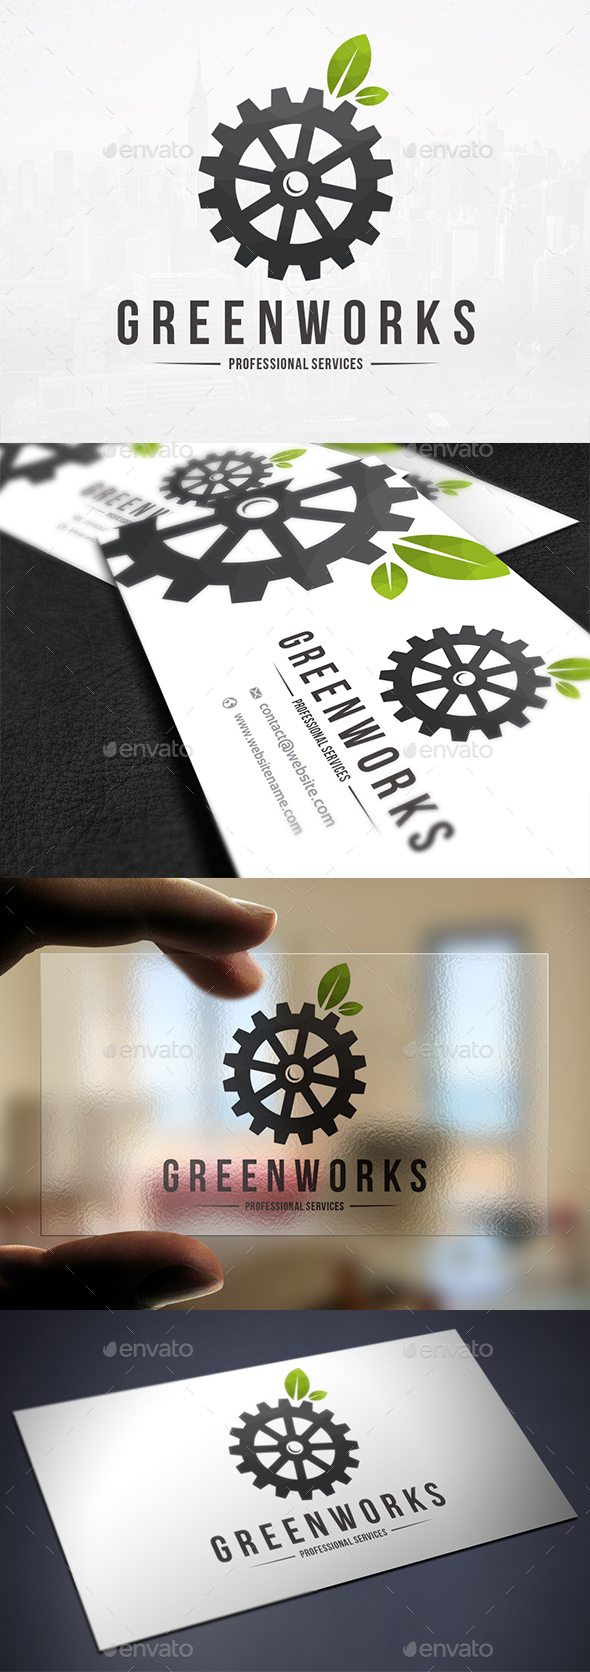 Green Works Logo Template - Nature Logo Templates